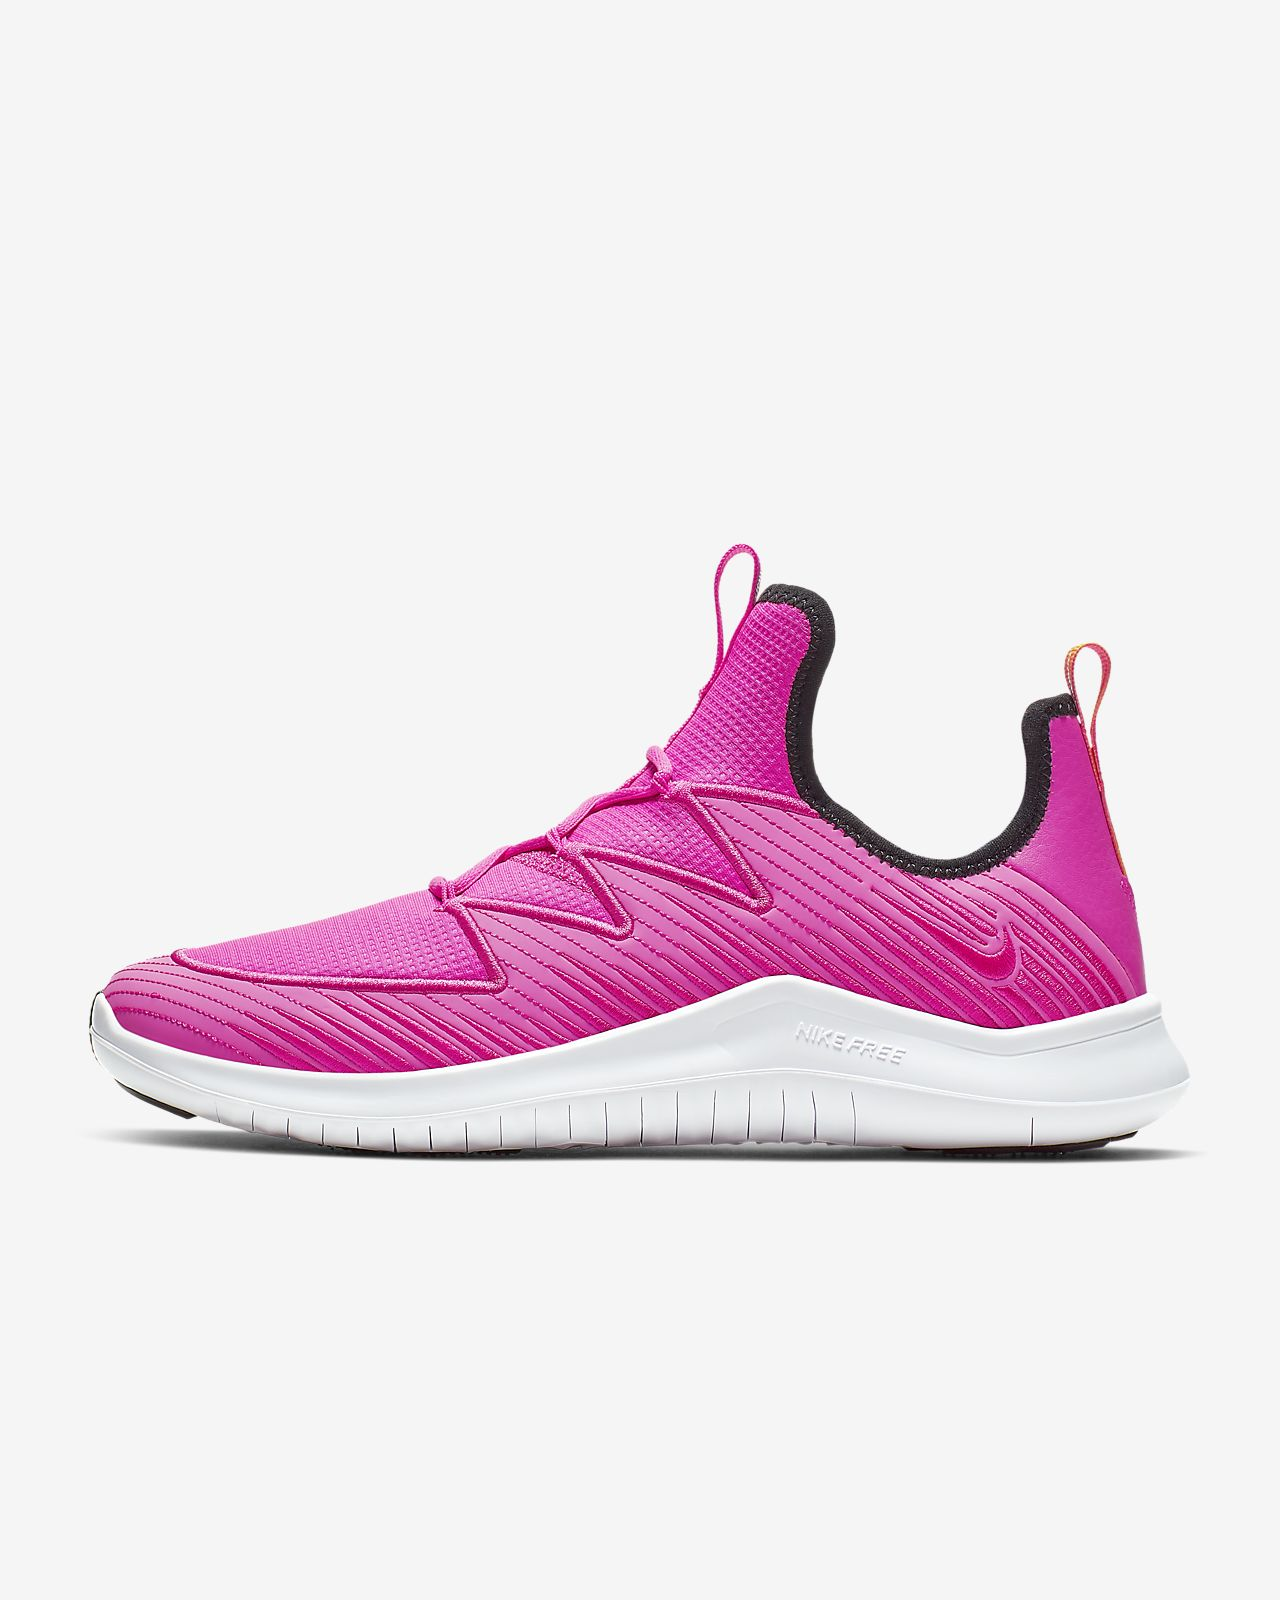 07c3f889b1f7 Nike Free TR Ultra Women s Training Shoe. Nike.com AU